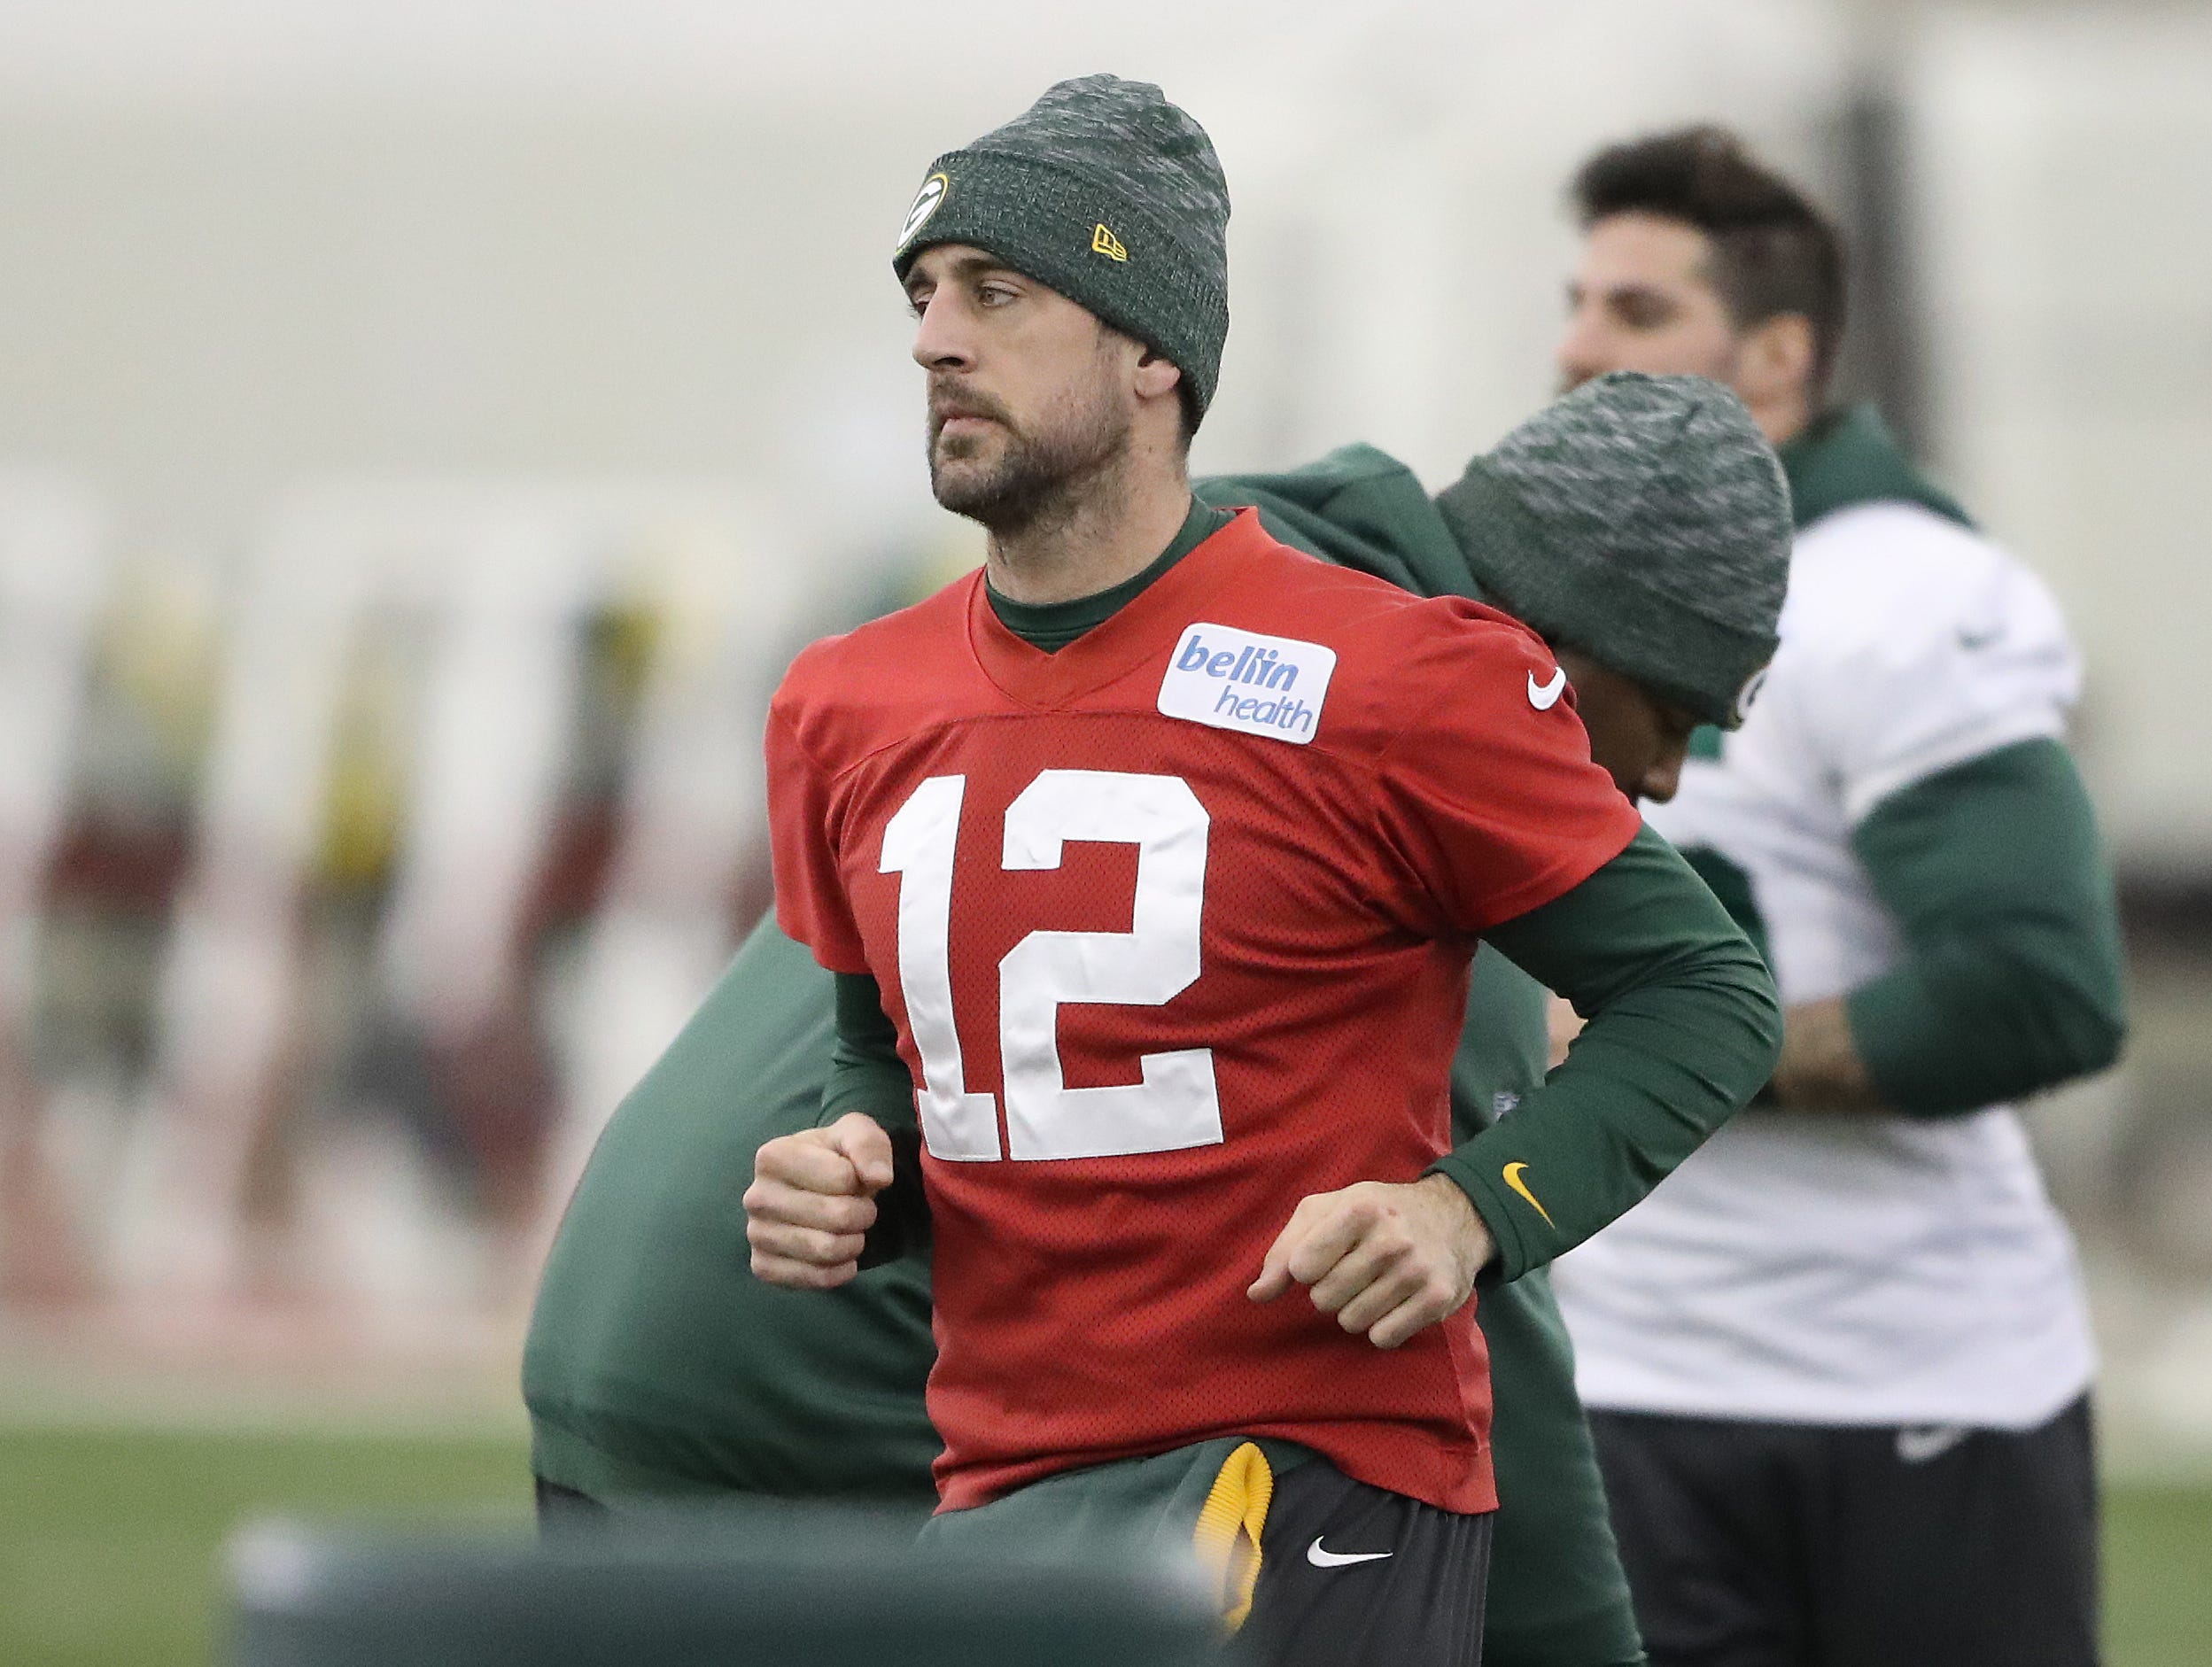 Green Bay Packers quarterback Aaron Rodgers (12) during practice Wednesday, December 12, 2018 in the Don Hutson Center in Ashwaubenon, Wis.